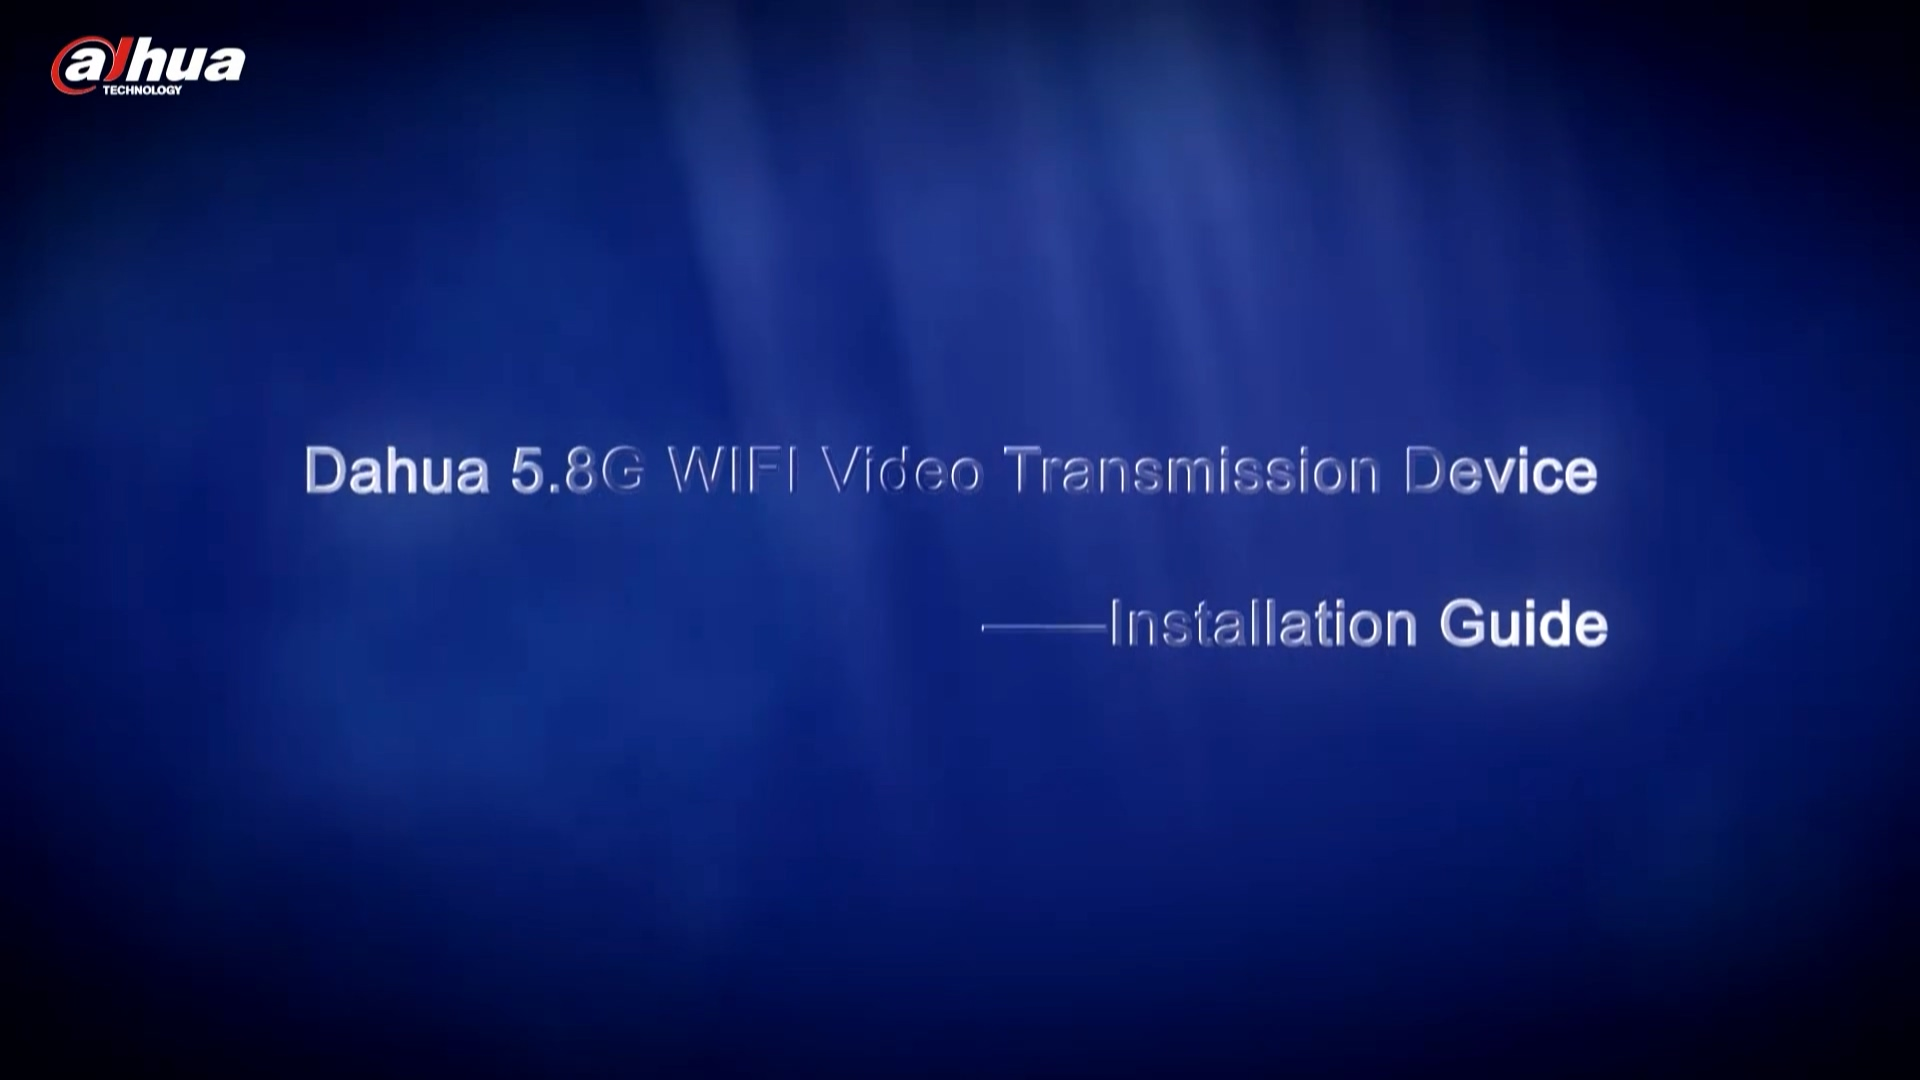 Dahua Transmission Device Installation Guide